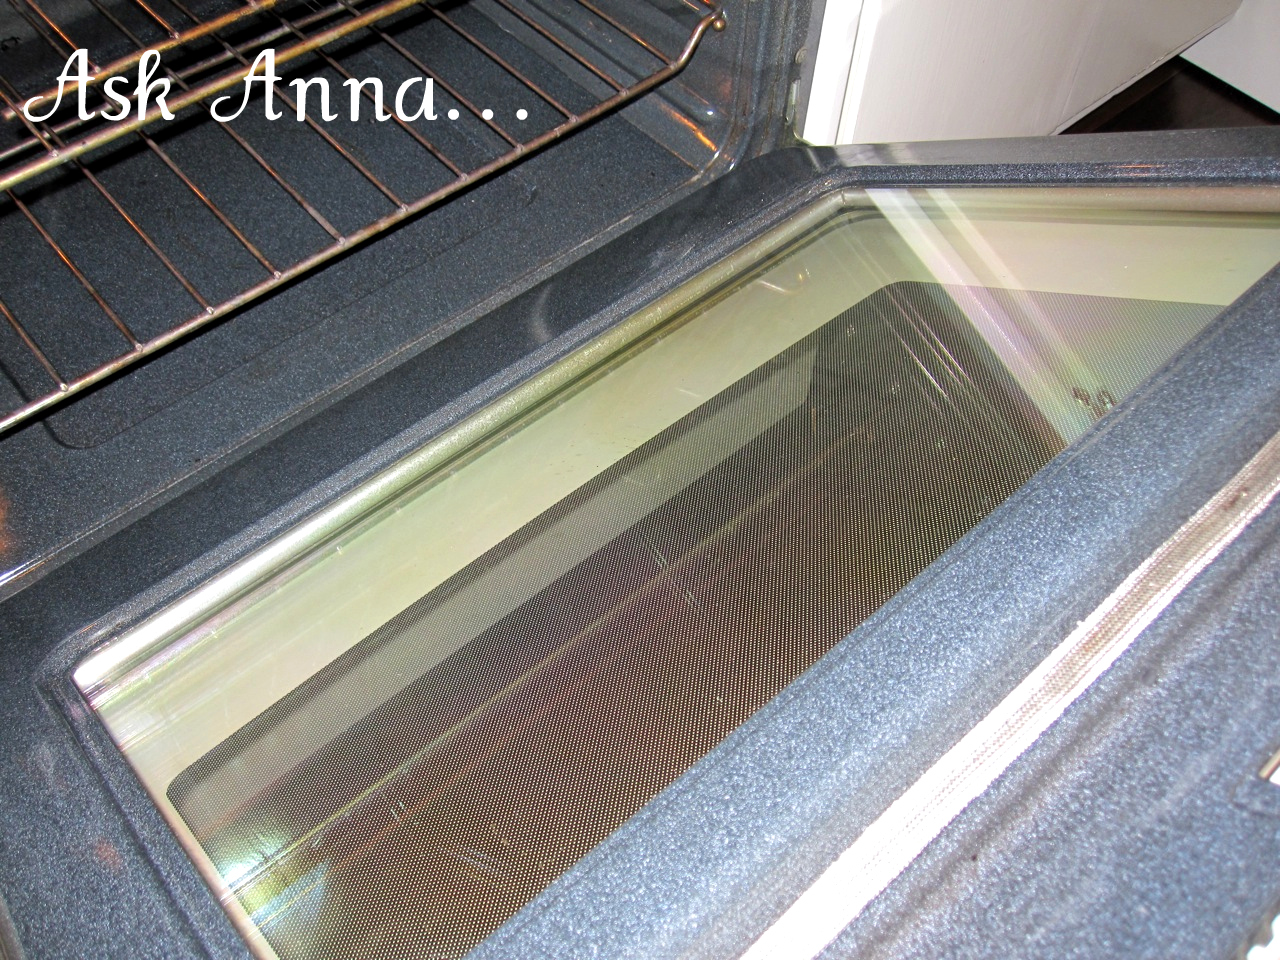 How to clean oven glass - Ask Anna